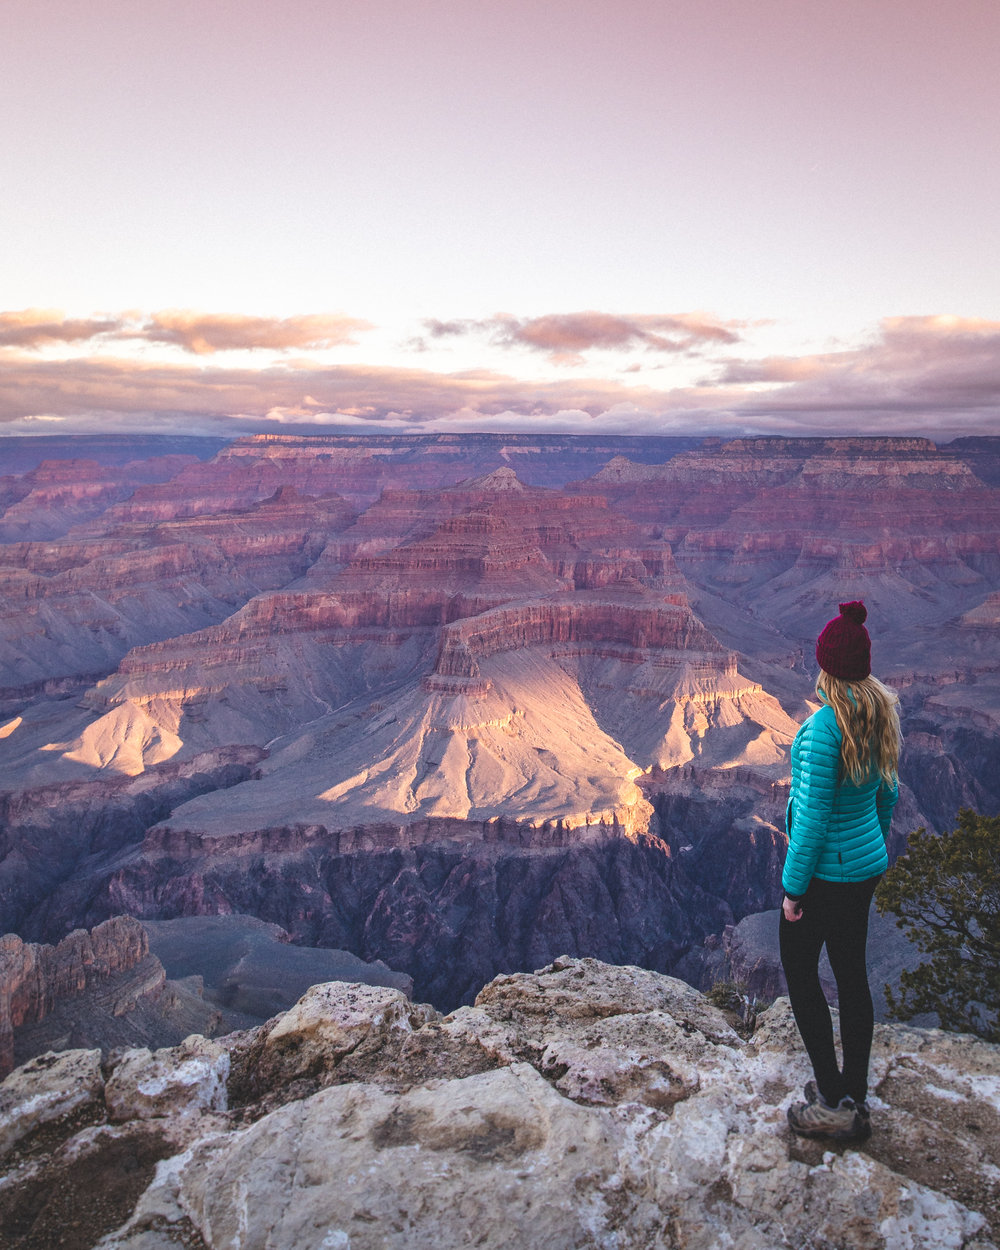 The stunning views of the Grand Canyon from the Rim Trail